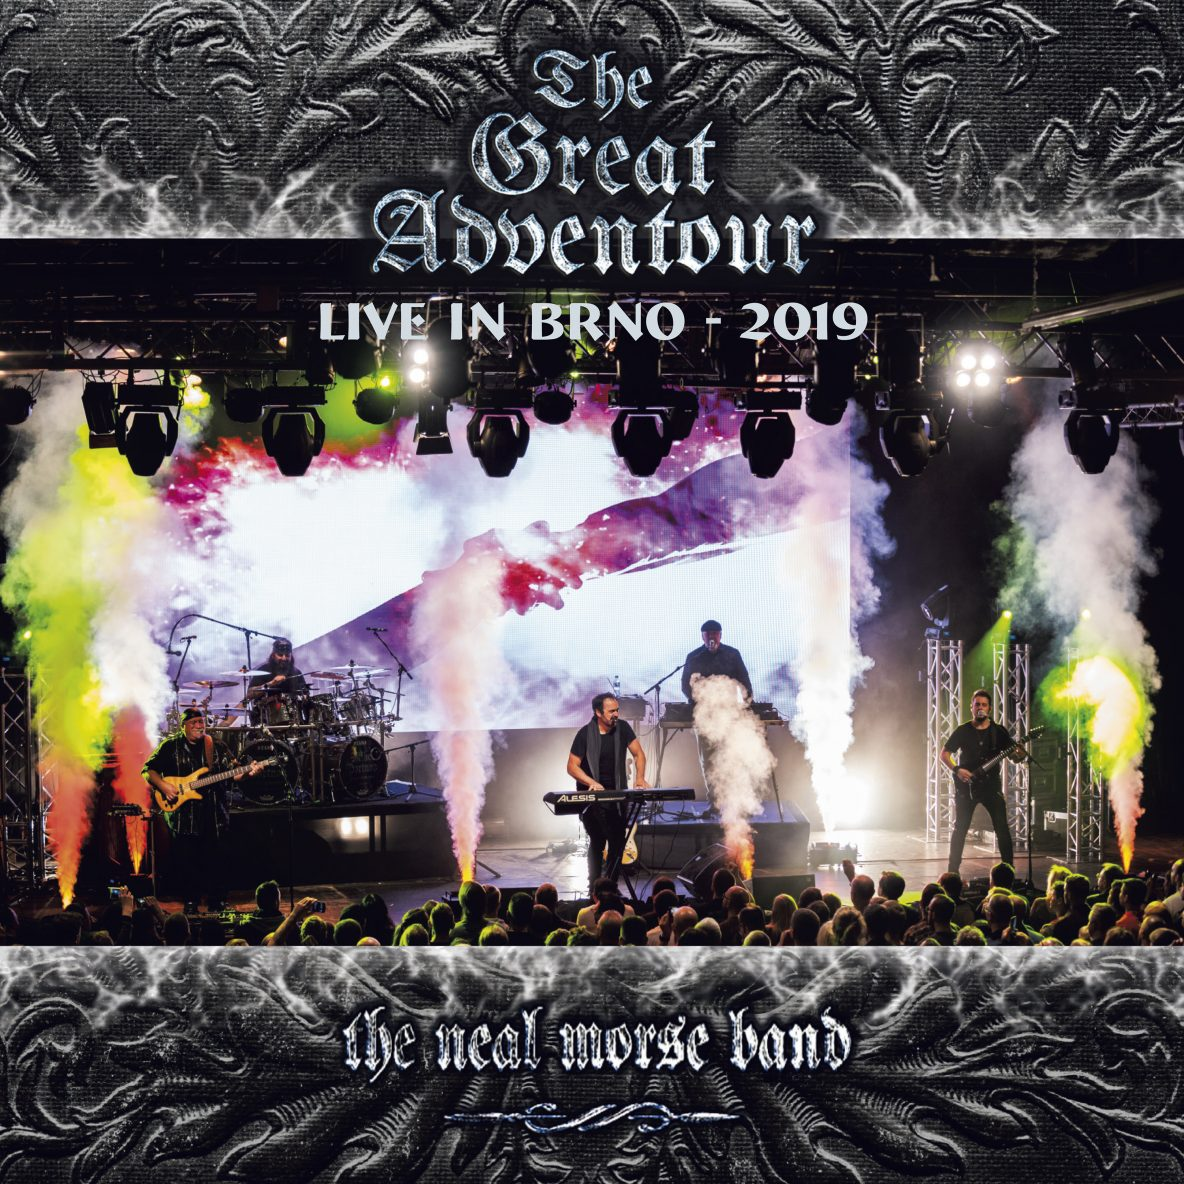 The Neal Morse Band – The Great Adventour – Live in BRNO 2019